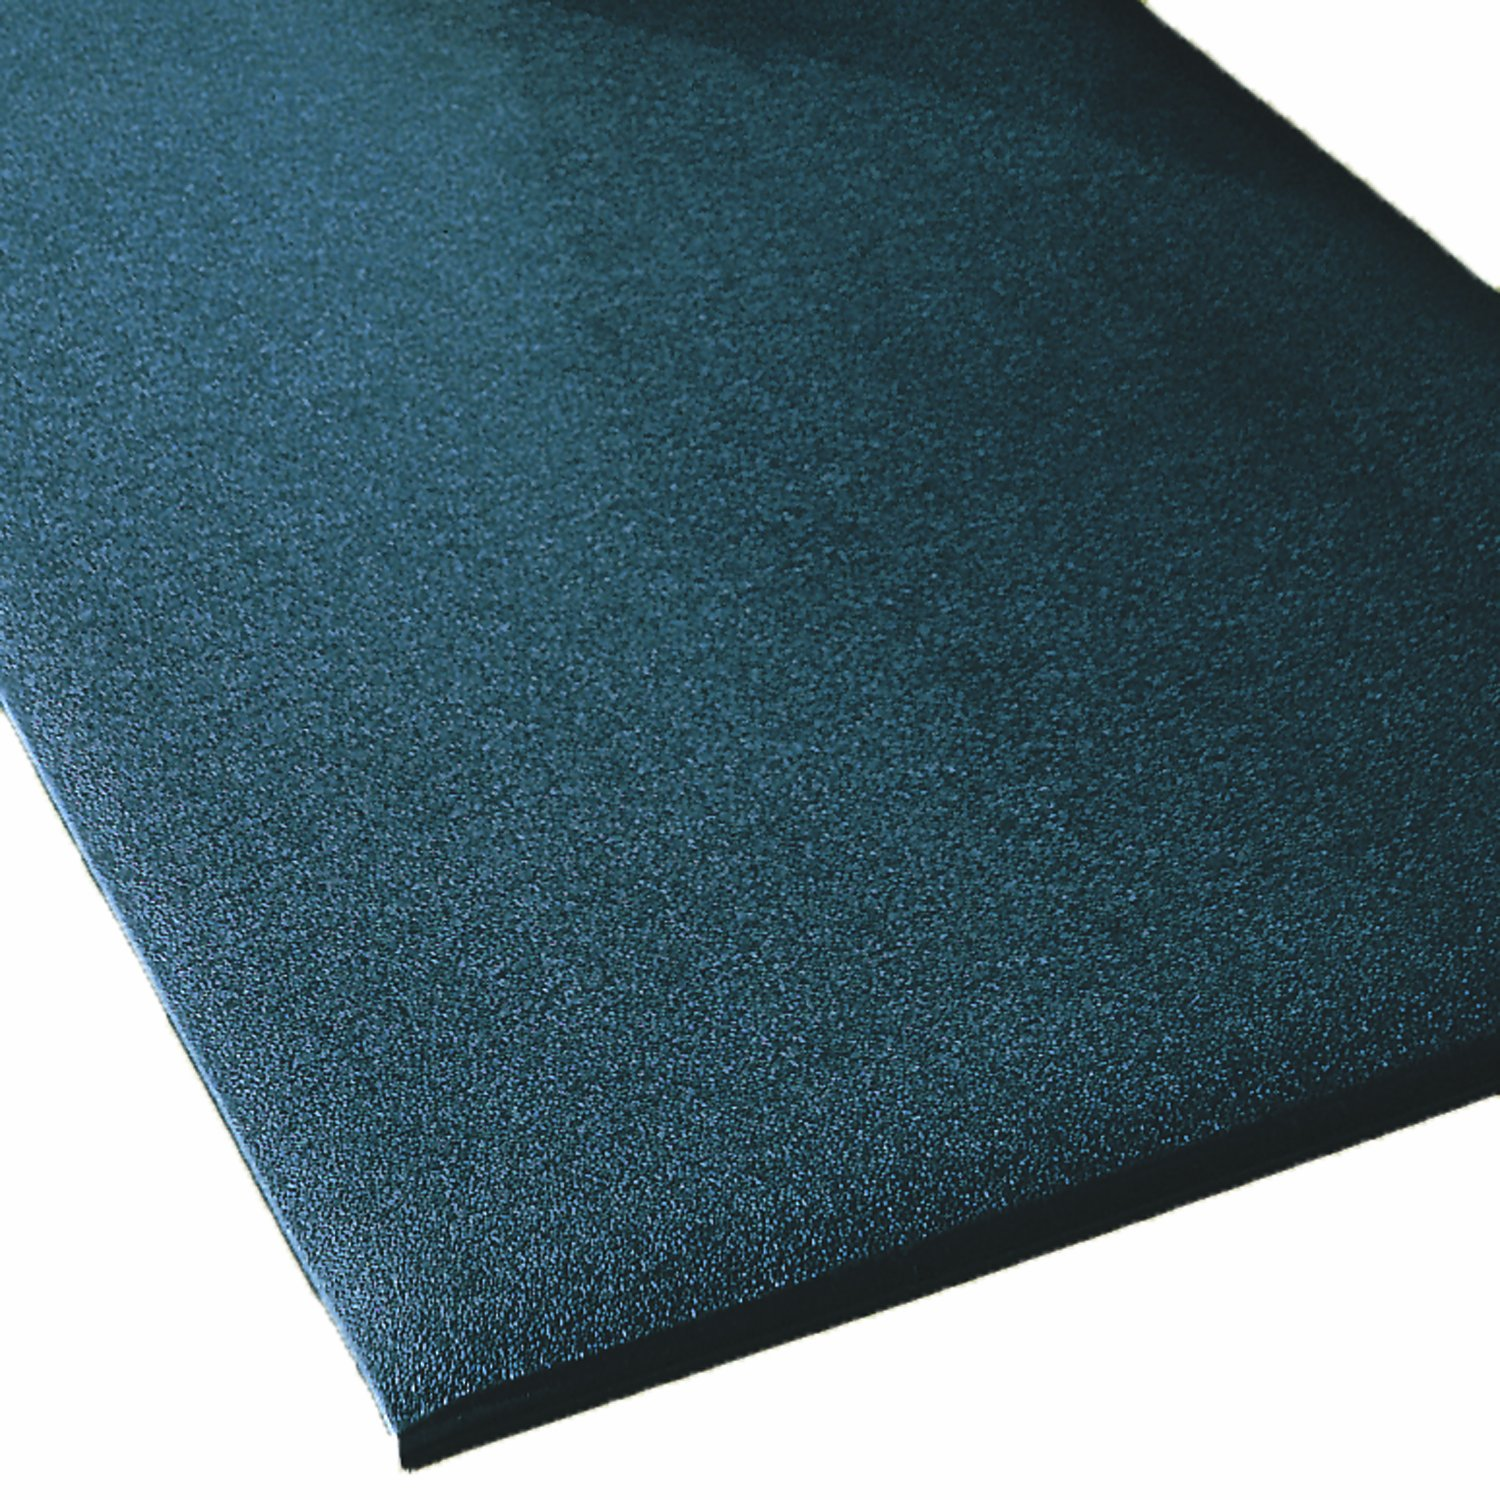 Rhino Mats CST-4872-58B Comfort Step Textured Vinyl Foam Anti-Fatigue Mat, 4' Width x 6' Length x 5/8'' Thickness, Black